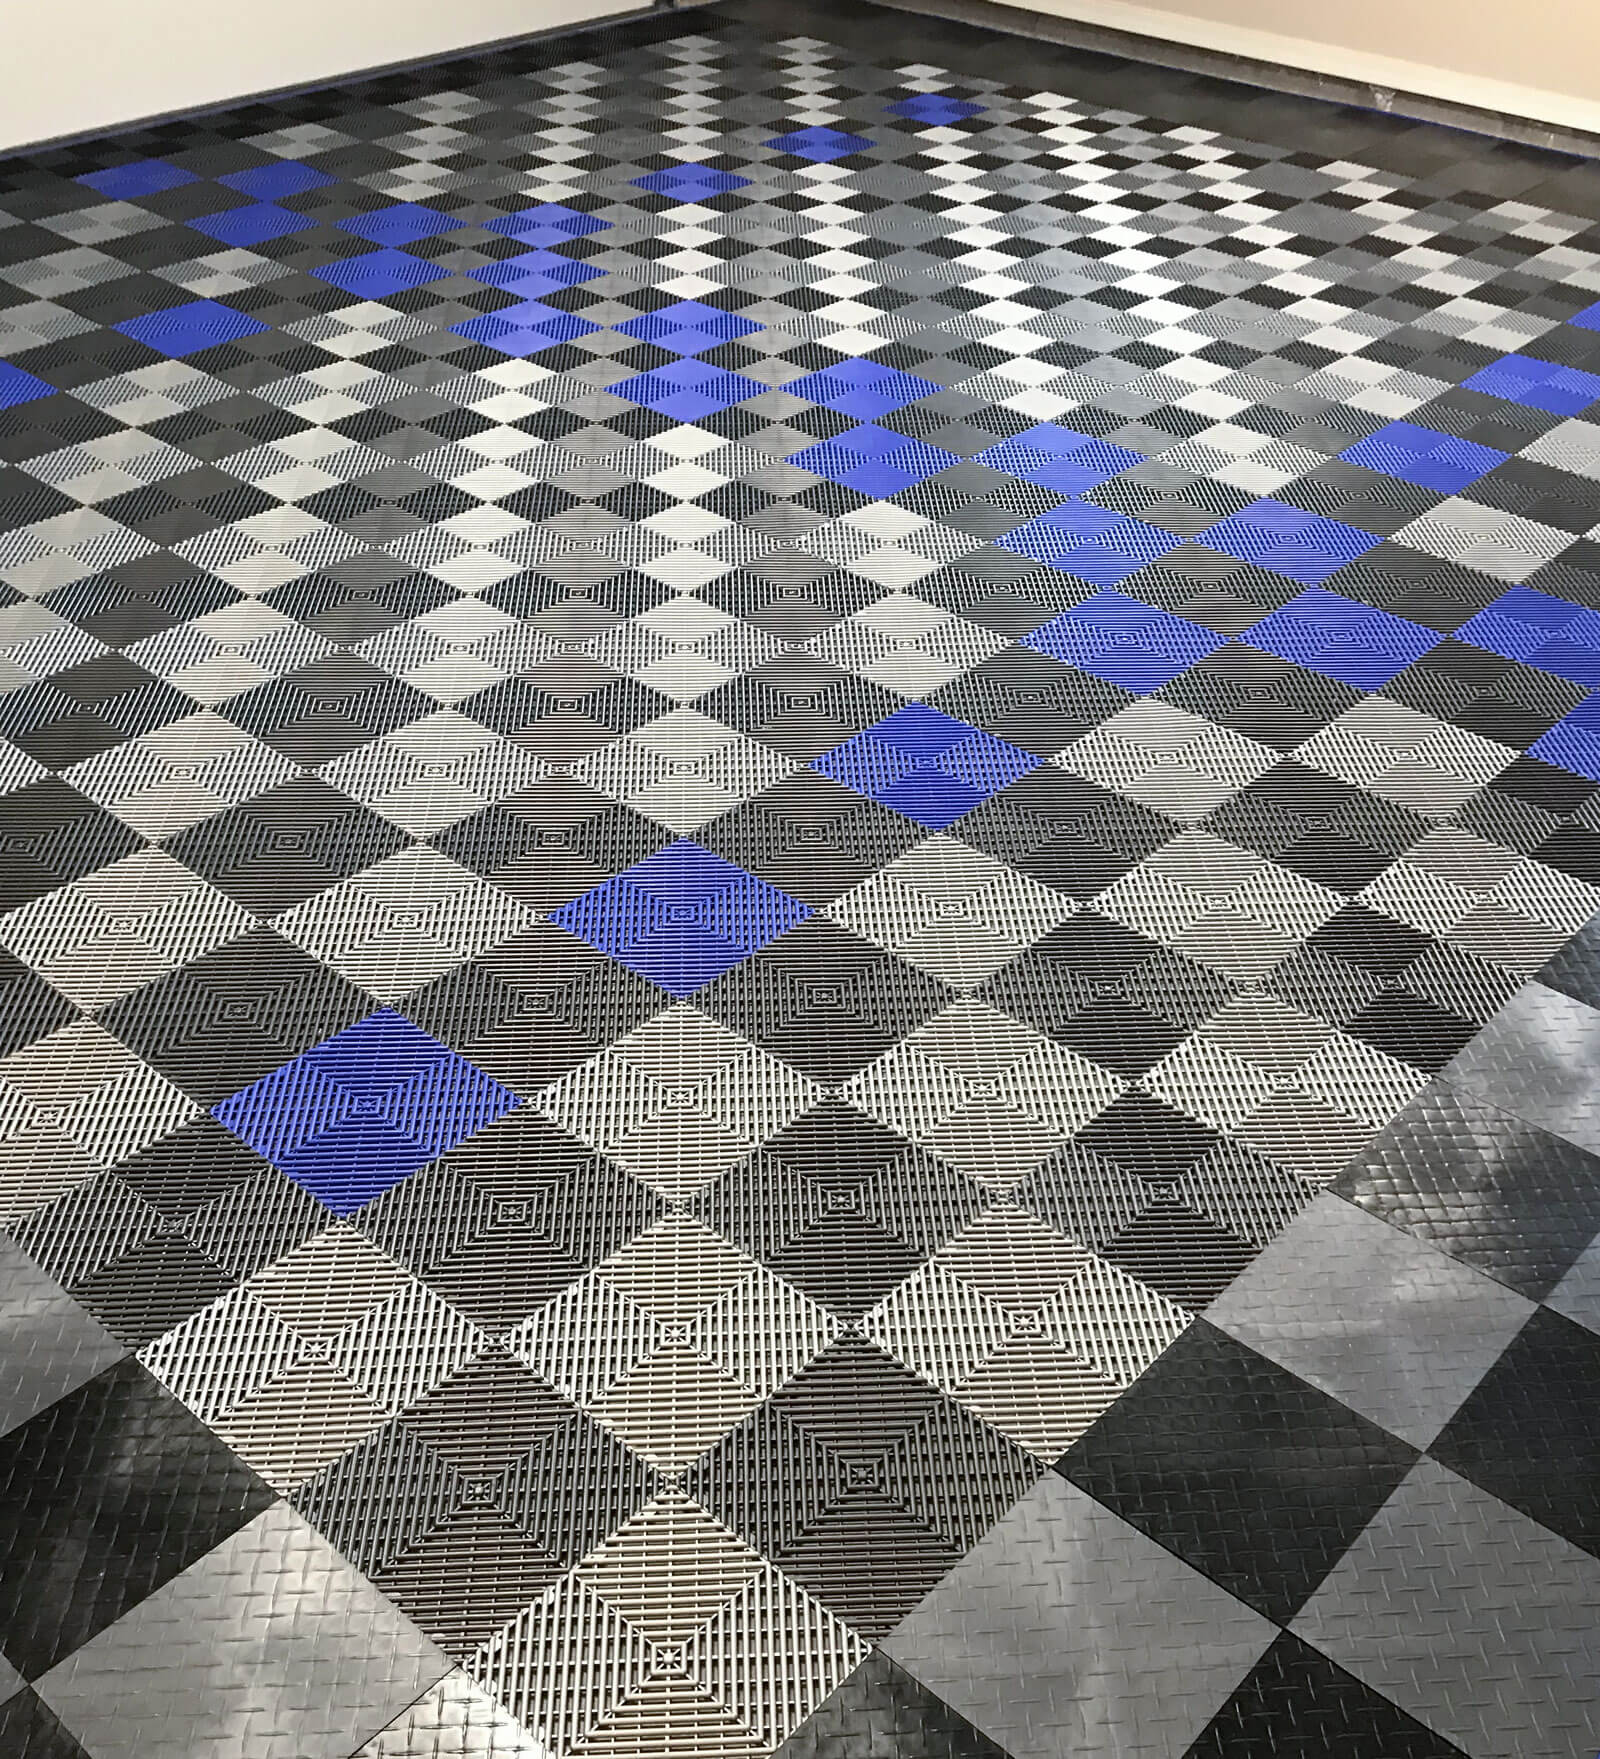 RaceDeck Diamond and Free-Flow in a custom pattern for this home garage.